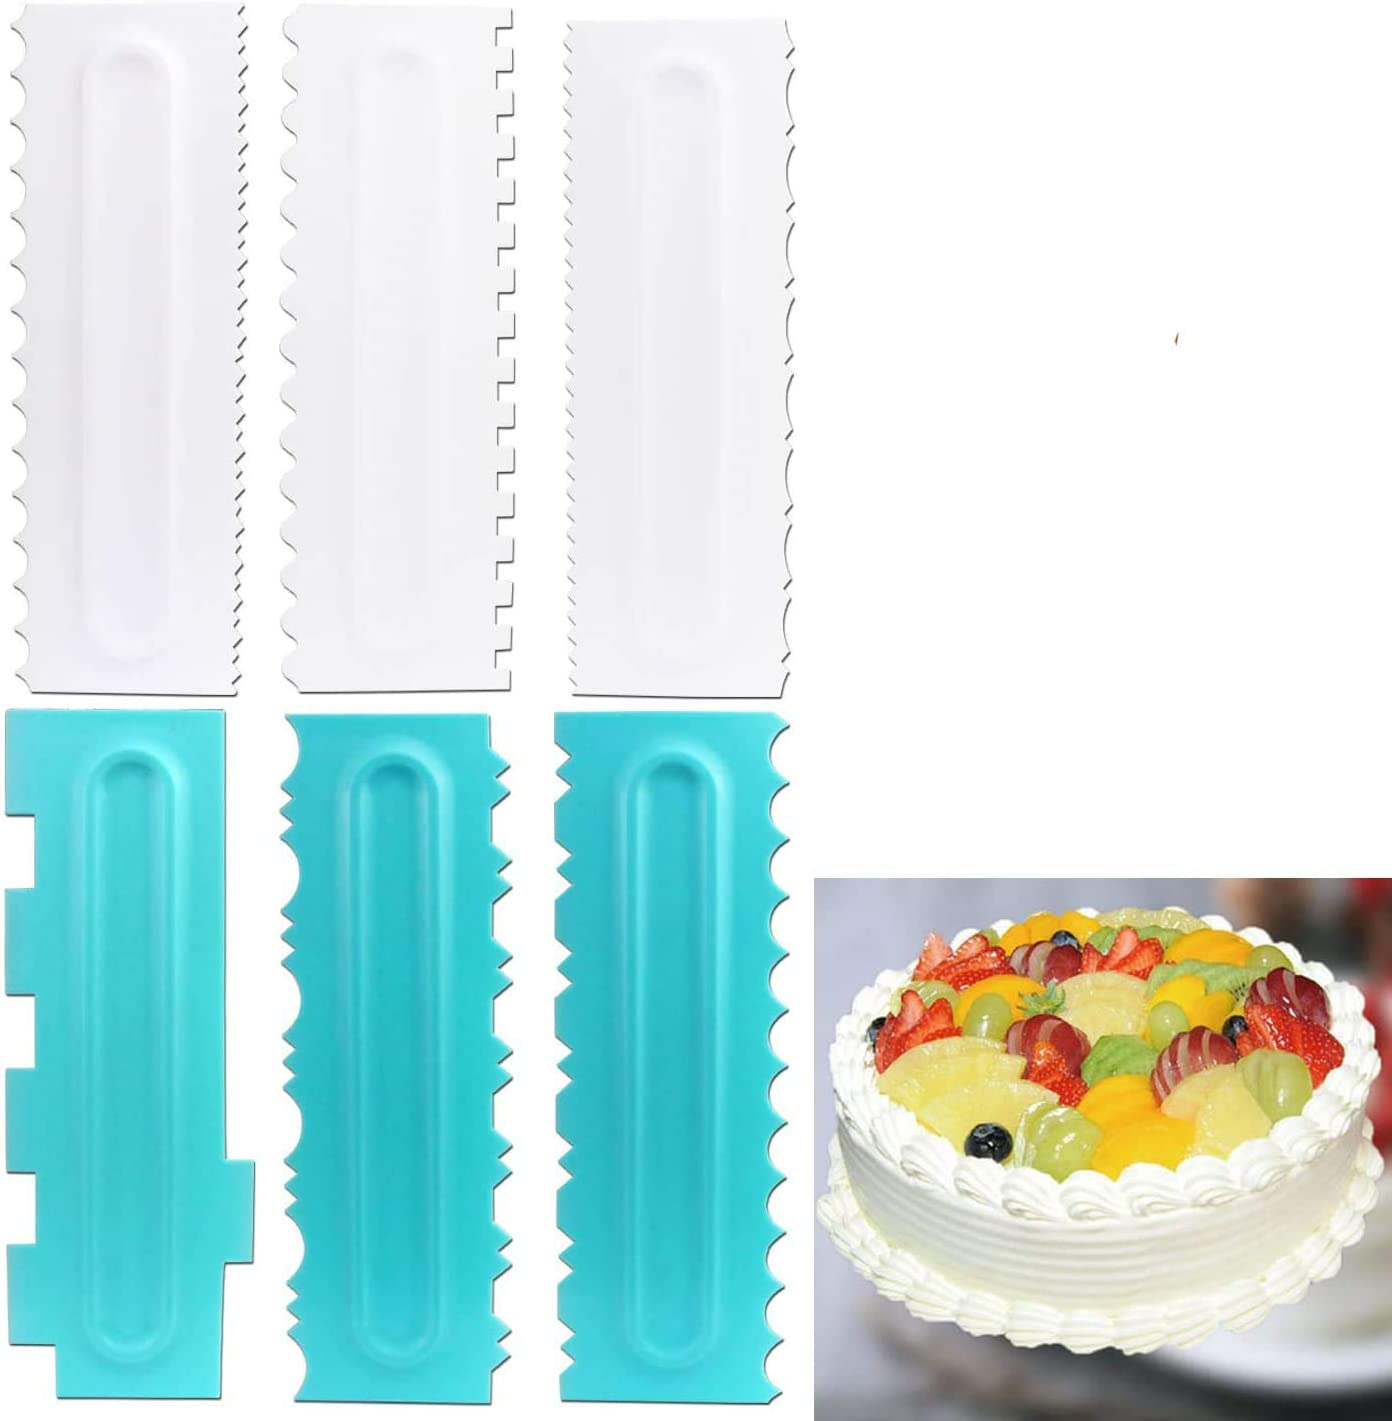 Chistepper 6 Pieces Cake Scrapers Set Bakeware Sculpting Modeling Tools Cake Decorating Comb and Icing Smoother Sawtooth Cake Scraper Decorating Tools